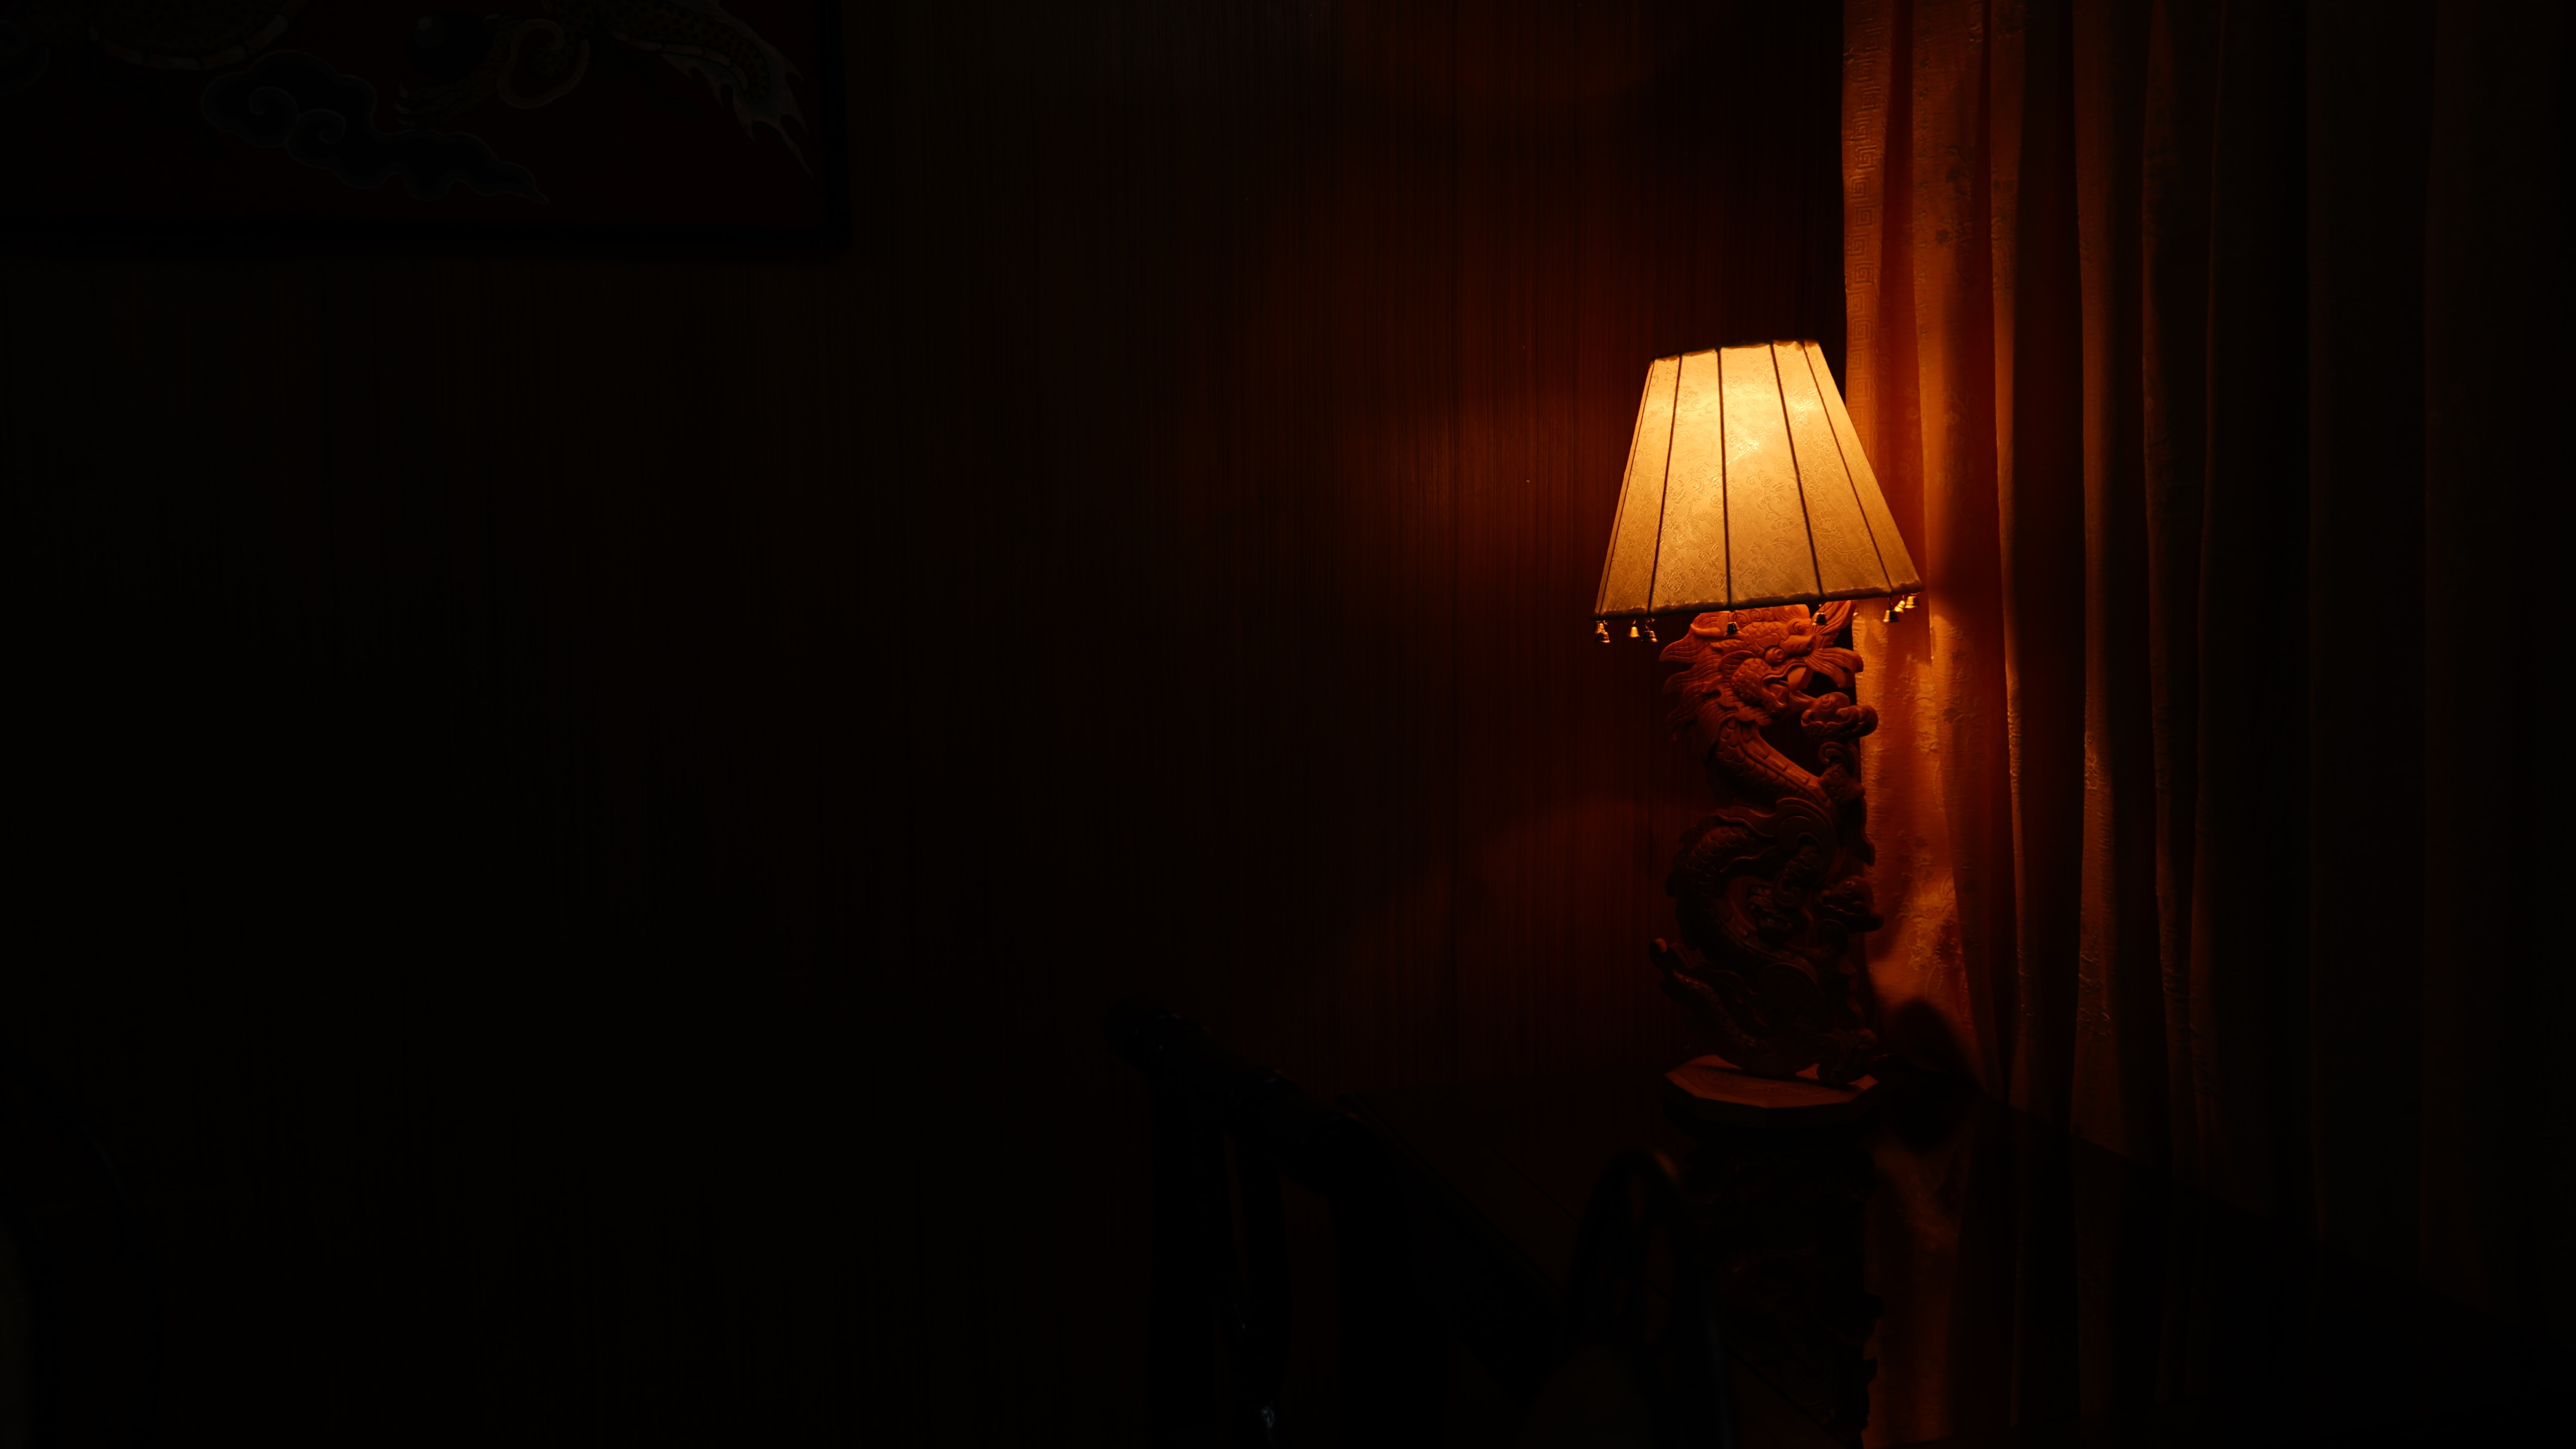 photography of lighted table lamp near dim room